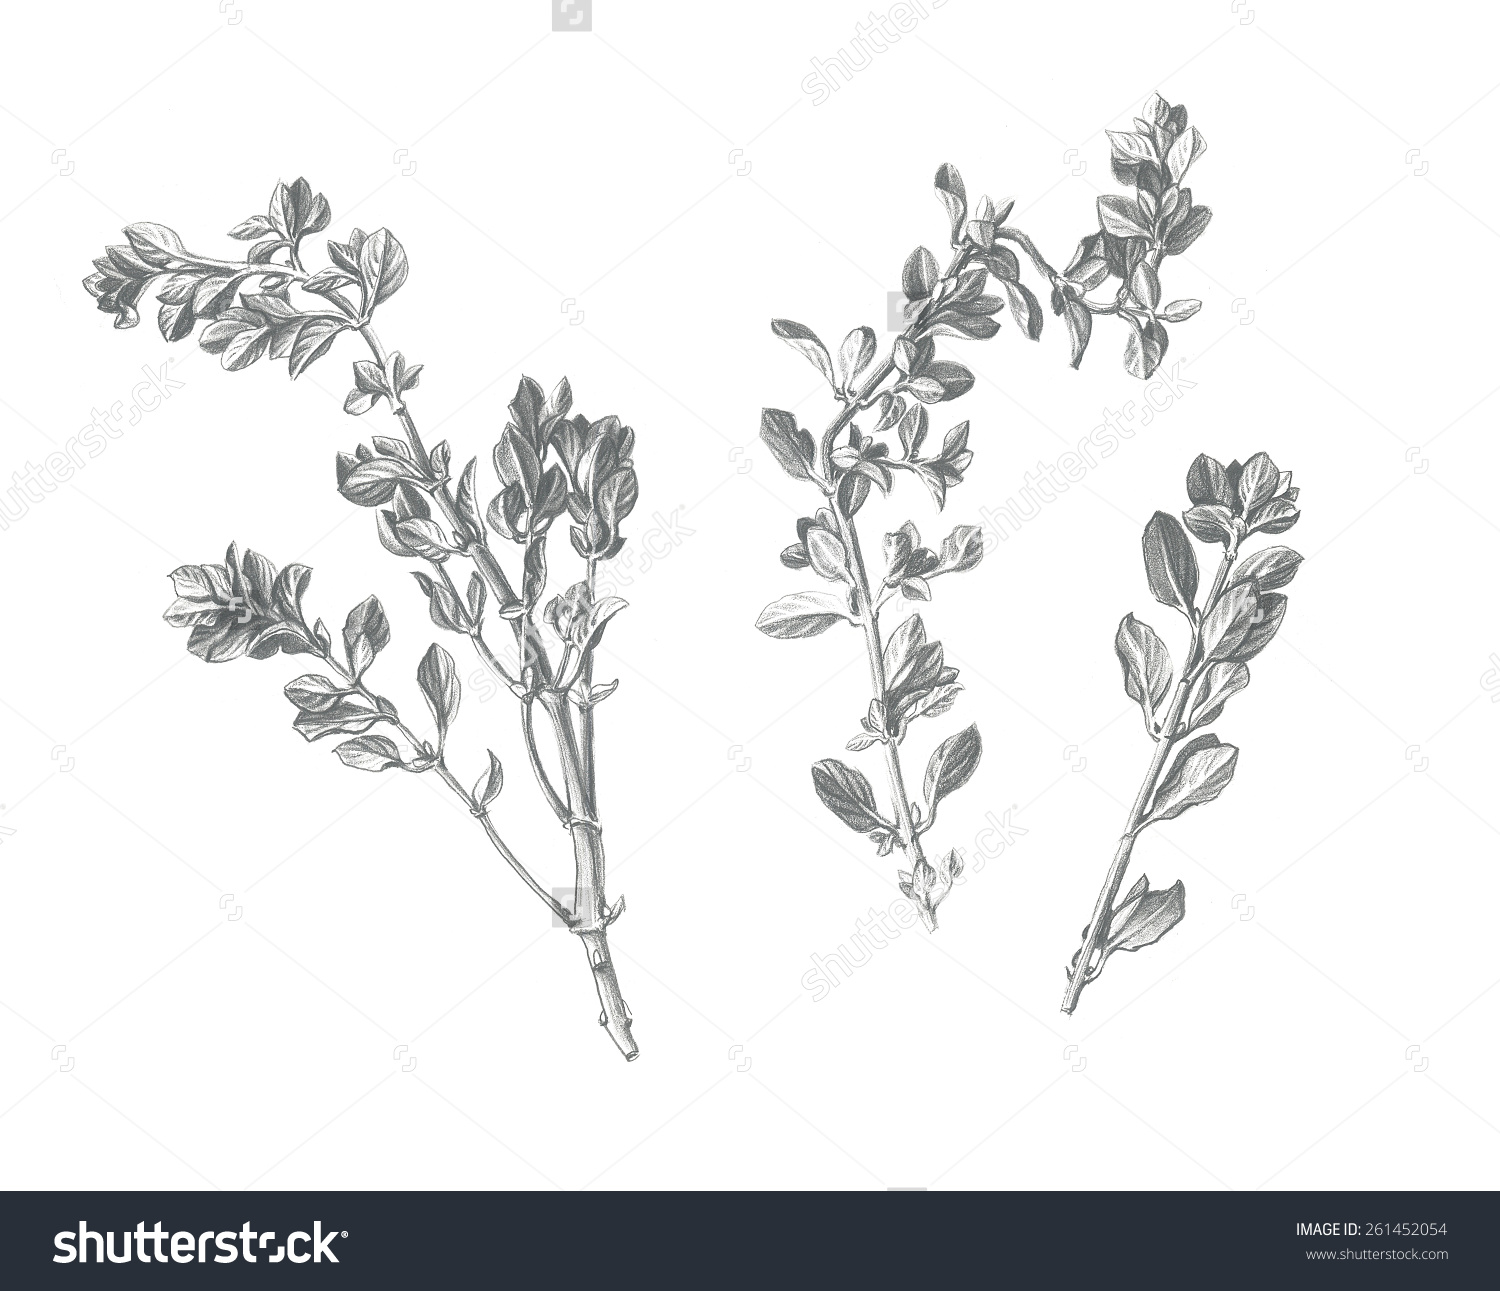 Marjoram Leaves Stems Pencil Drawing Isolated Stock Illustration.